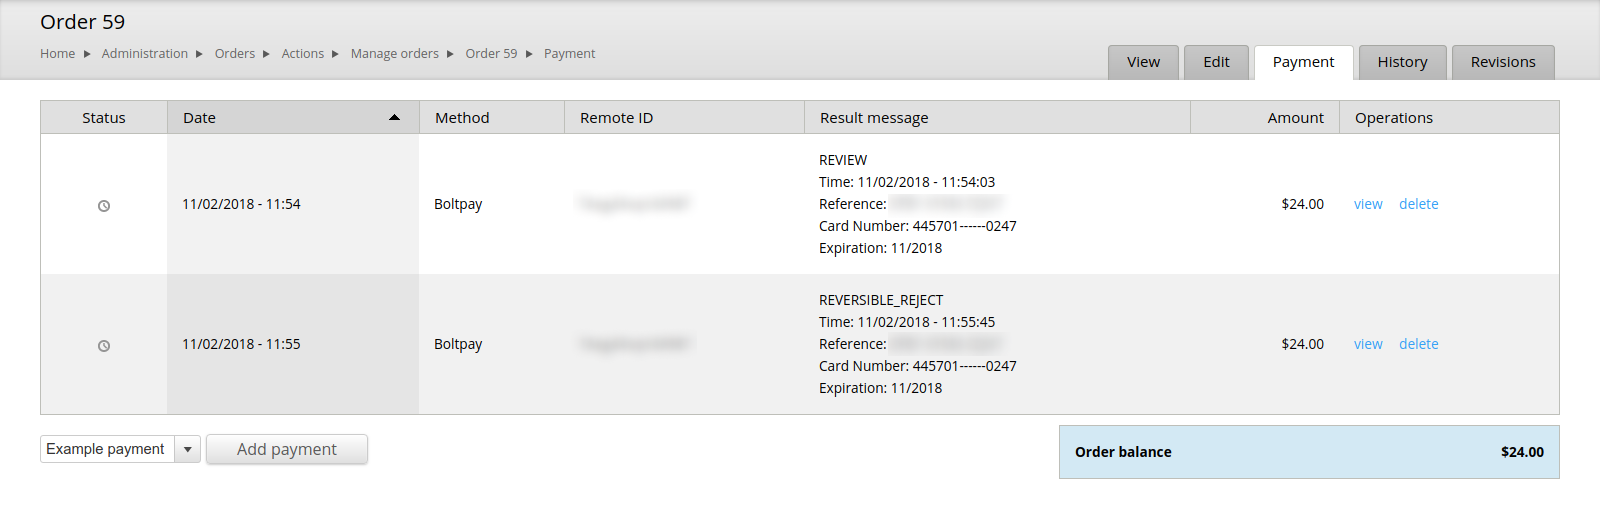 Image 7: Payment REVIEW -> REVERSIBLE_REJECT